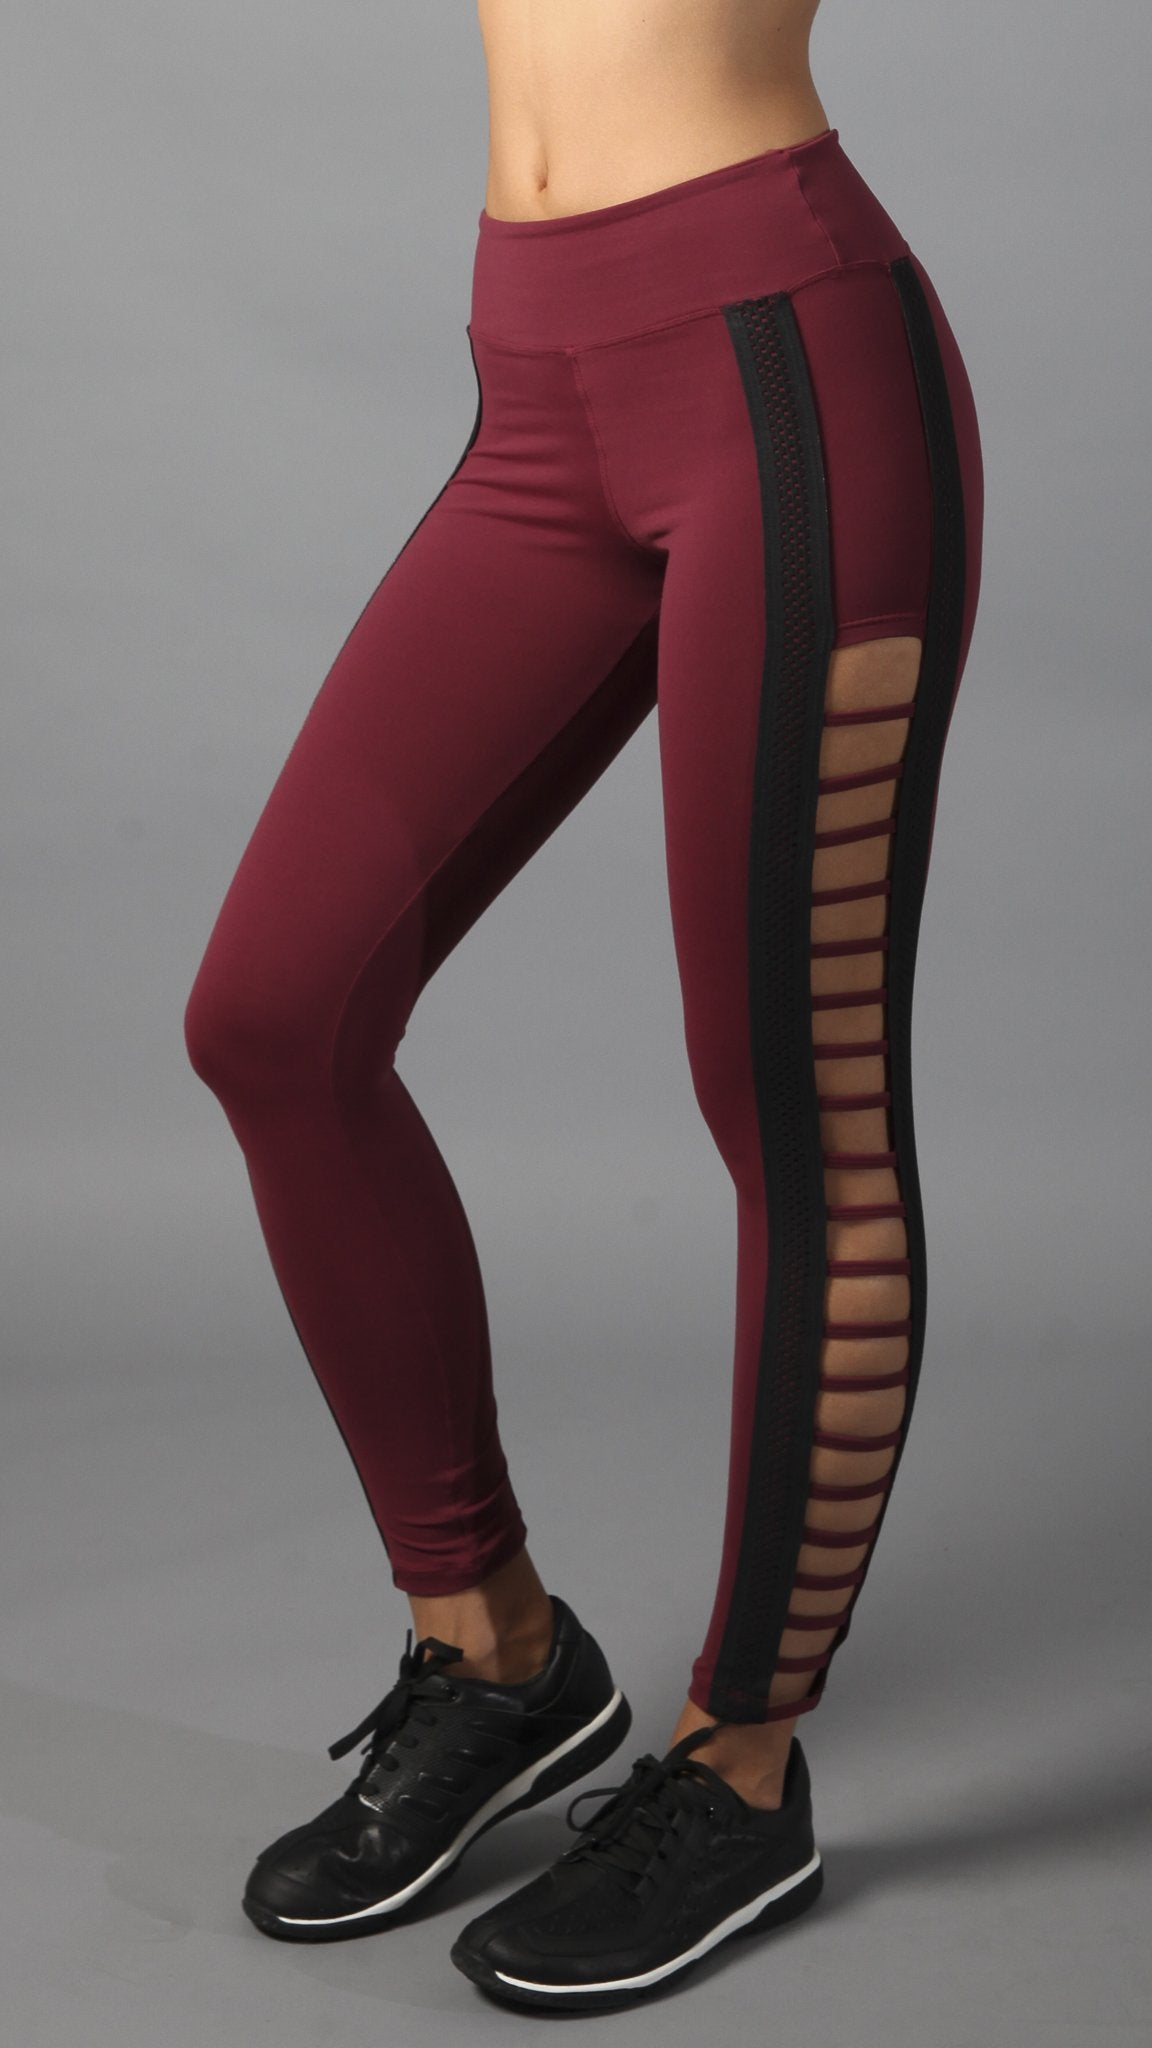 Bordeaux Legging L7028 Burgundy Black